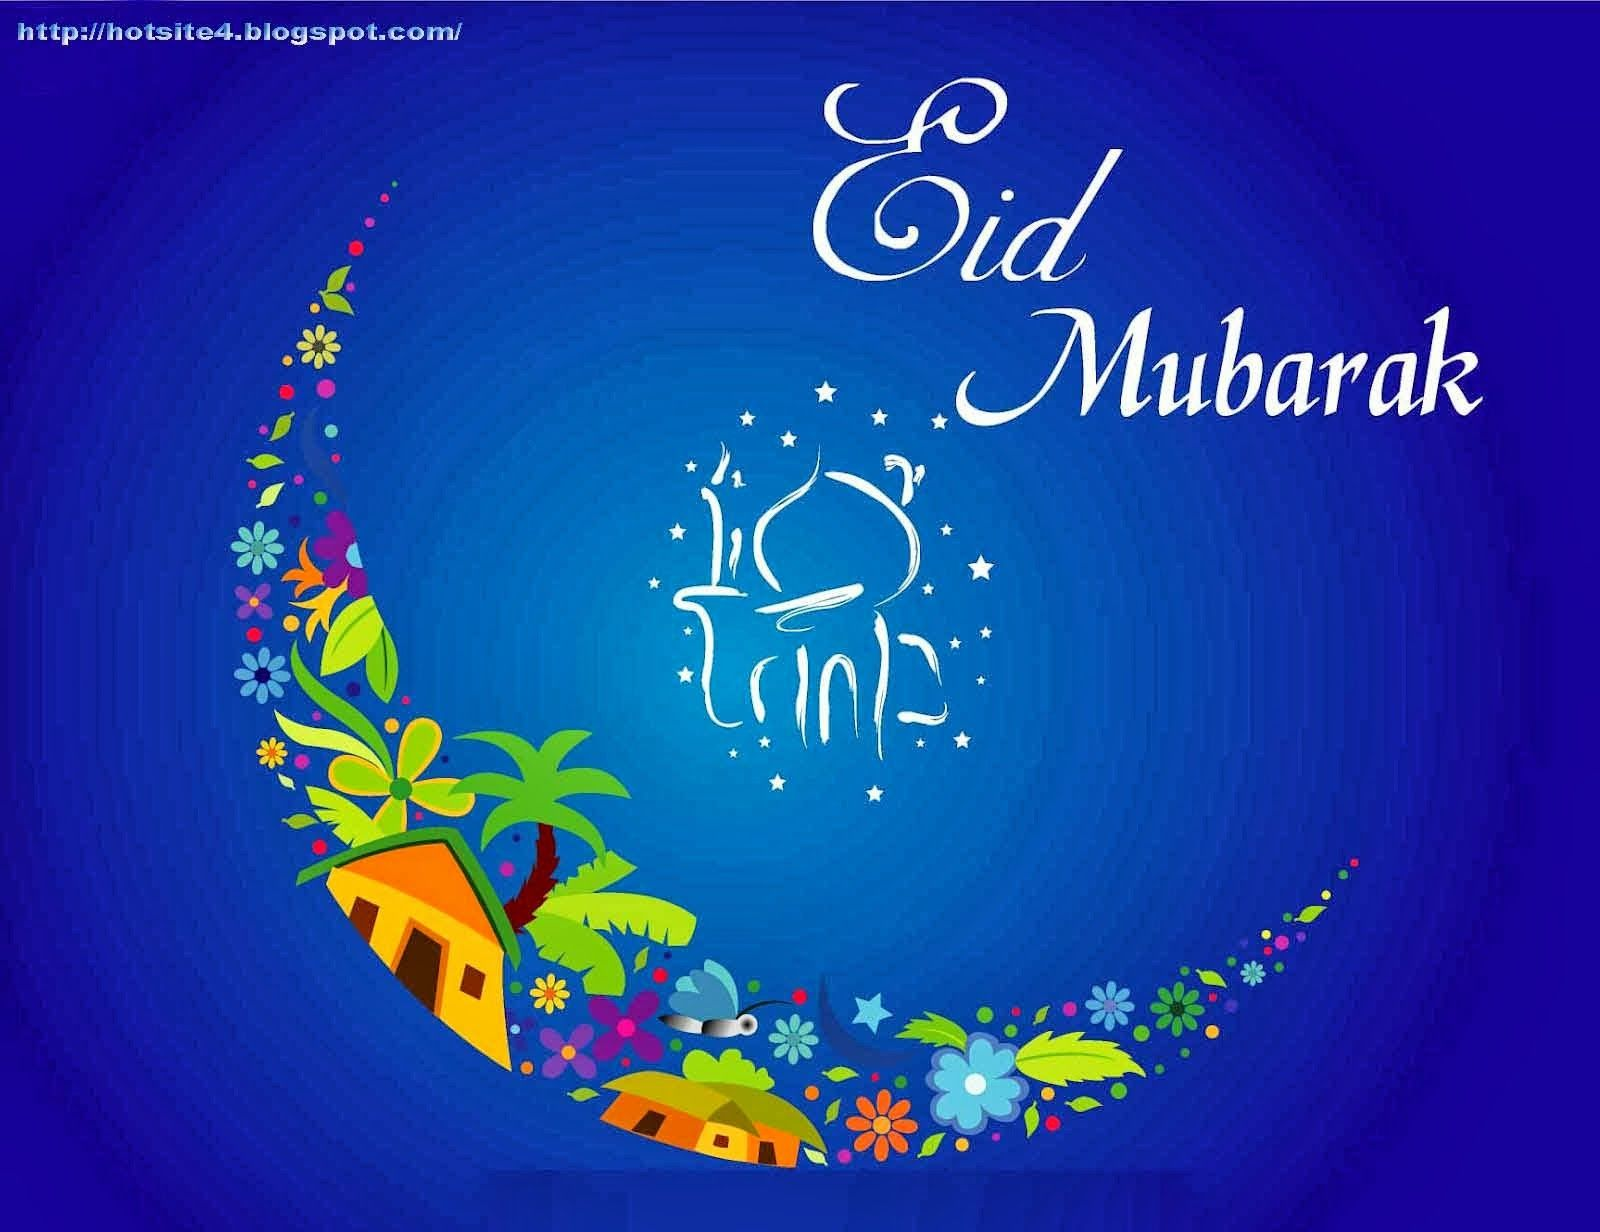 eid now  Eid mubarak wallpaper, Eid greetings, Eid mubarak images